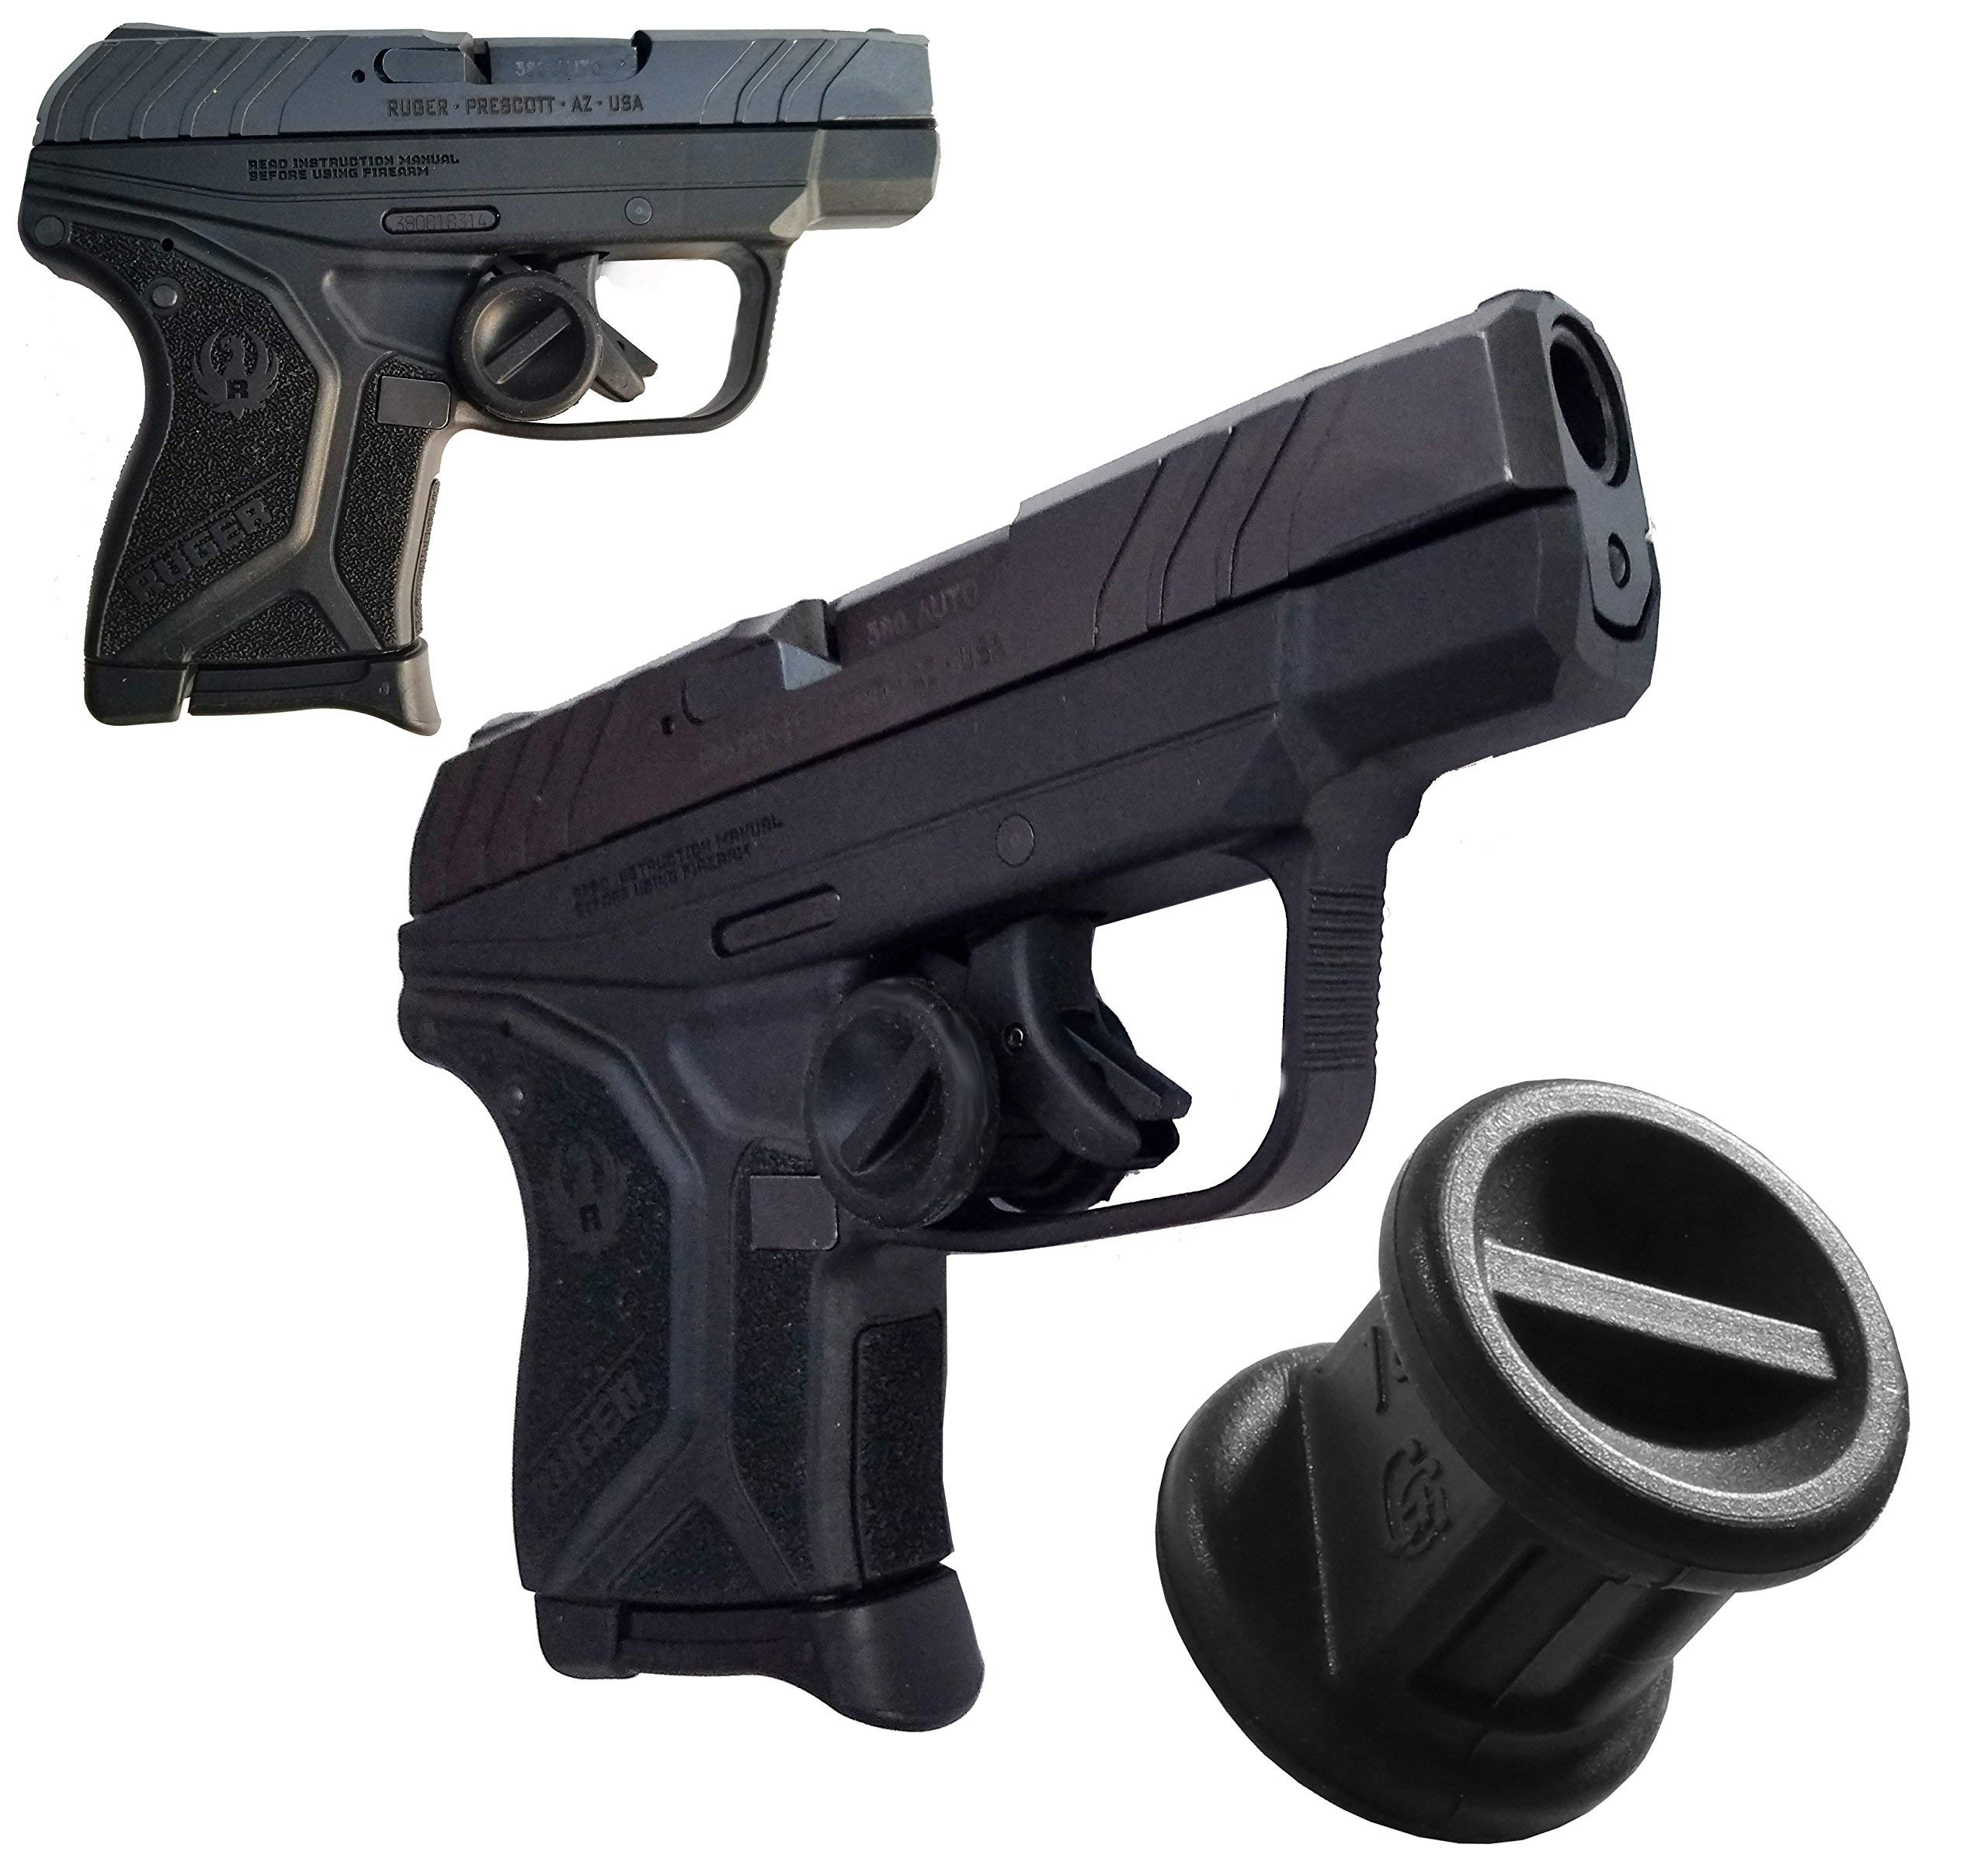 Garrison Grip Three Micro Trigger Stop Holsters Fit Kahr P380 ACP 380 All Kahr Models s18 Black